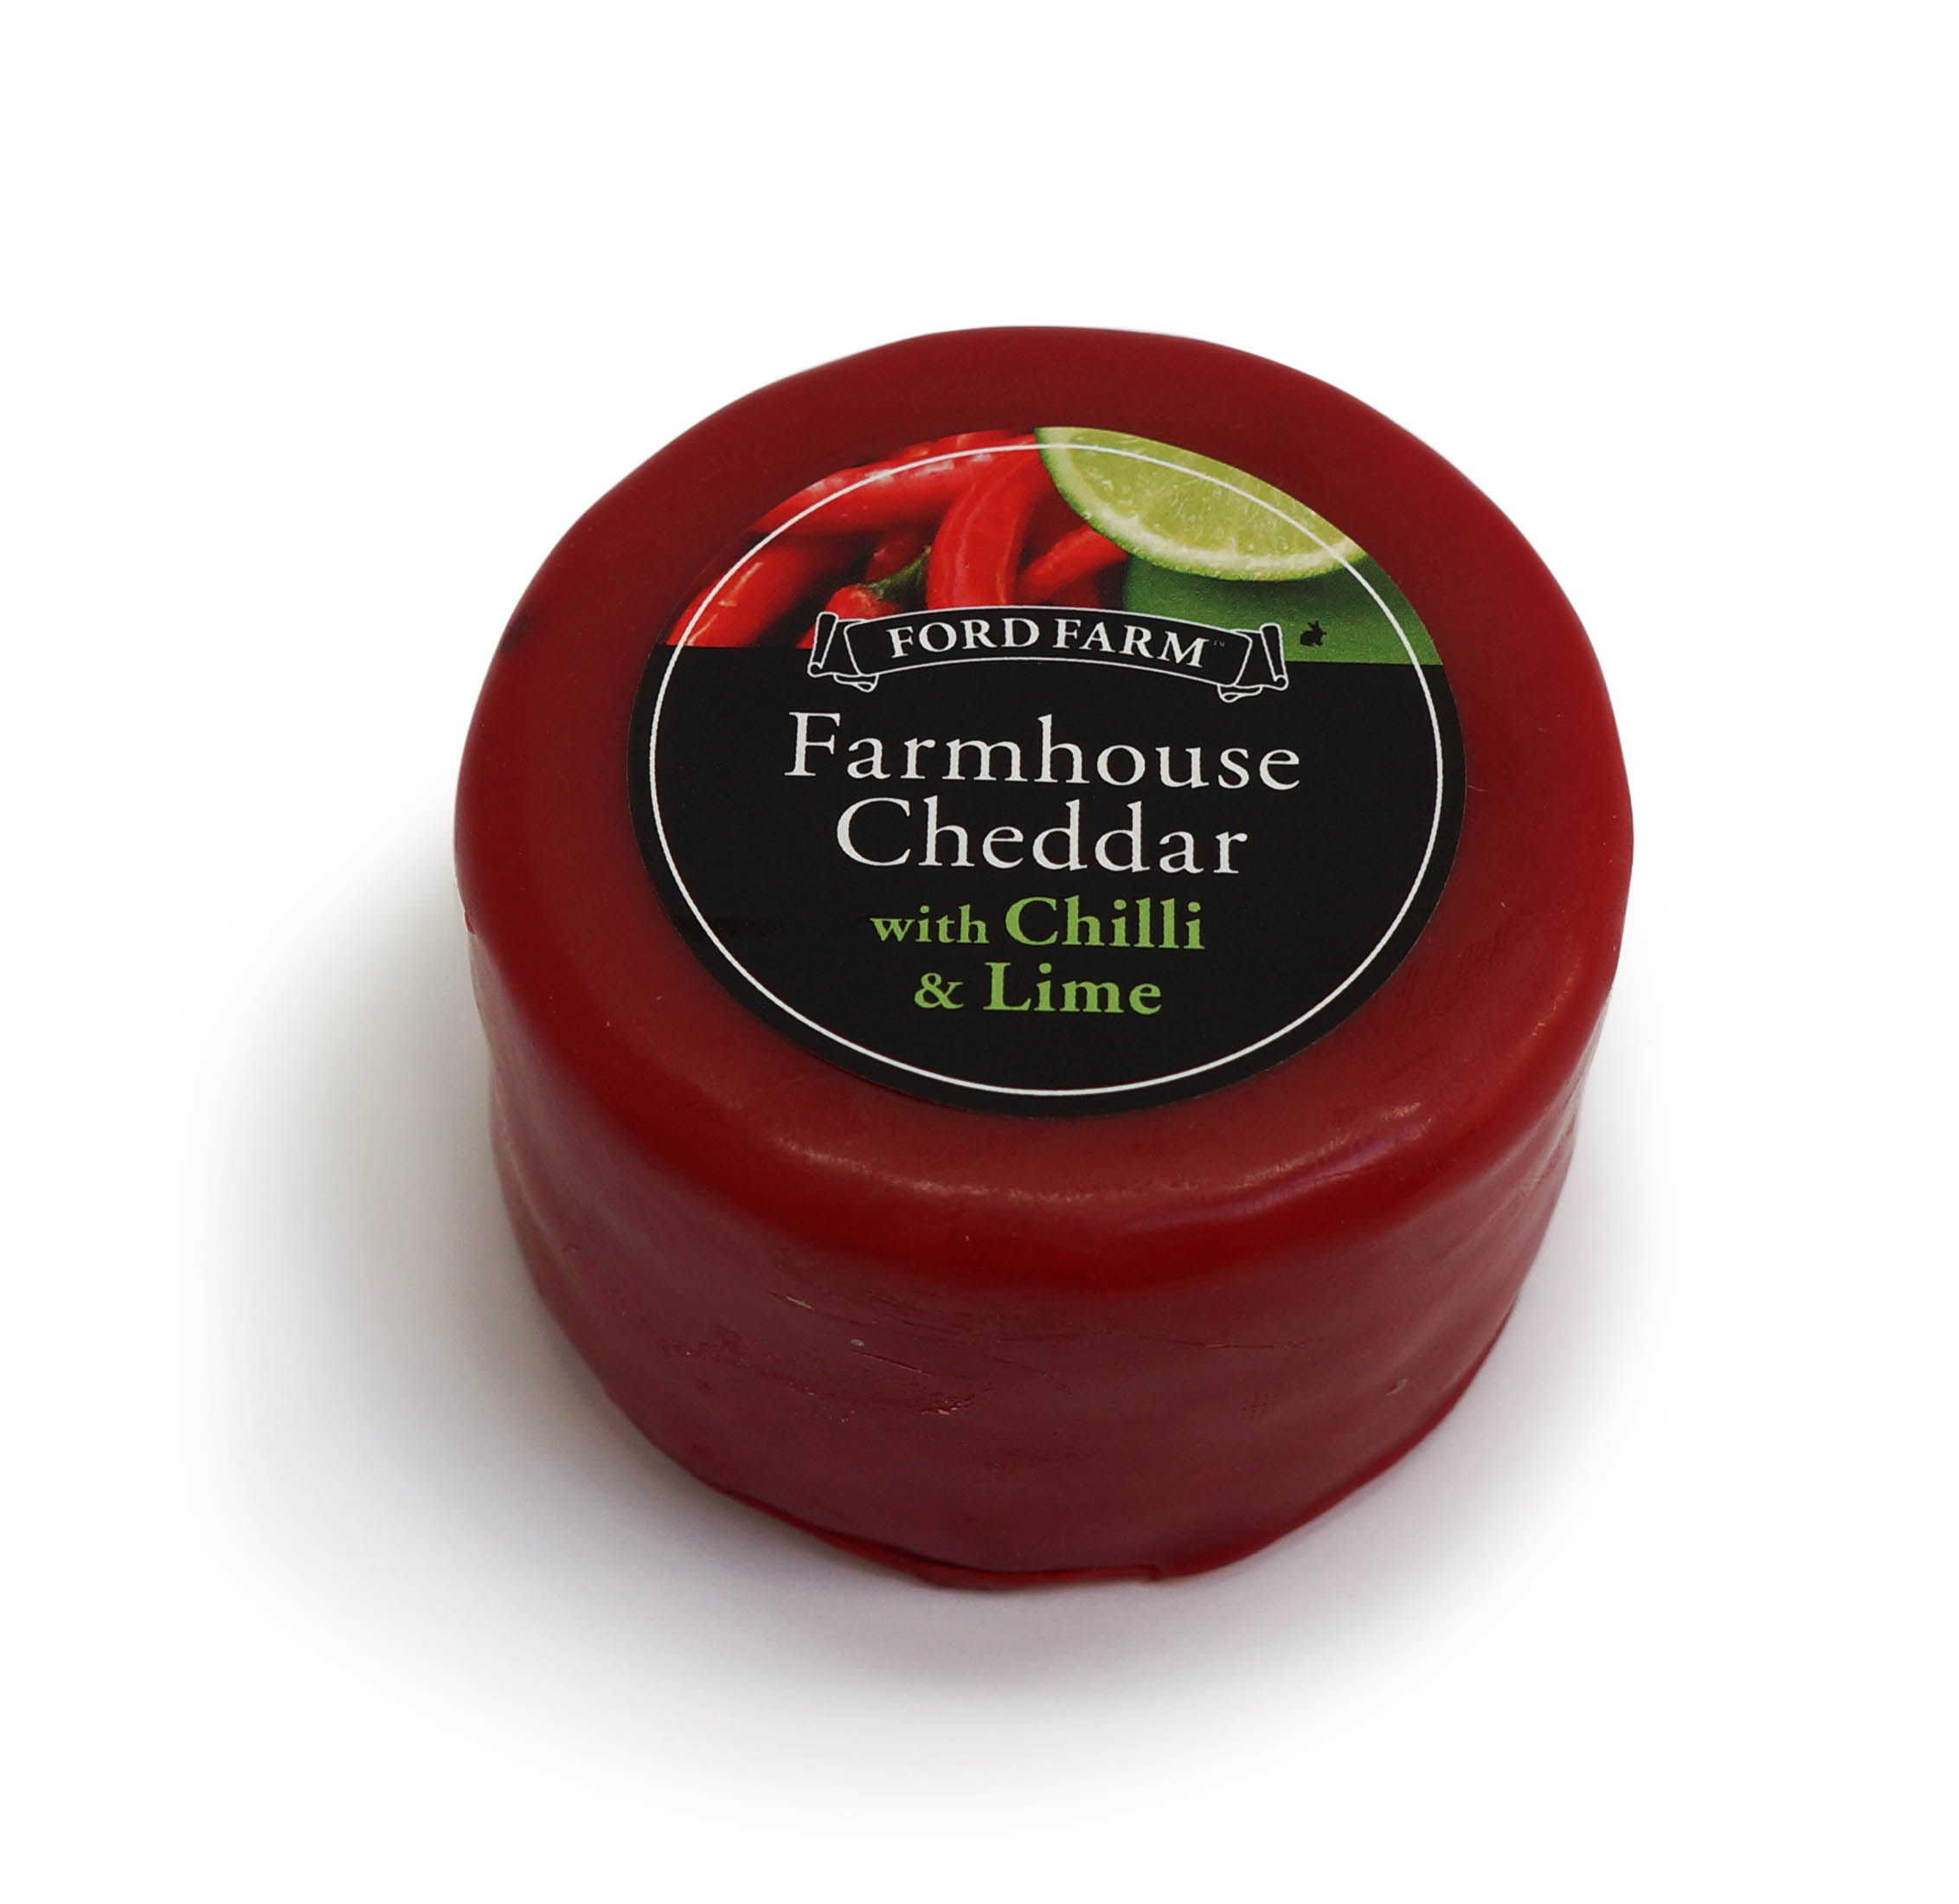 Farmhouse Cheddar with chilli and lime